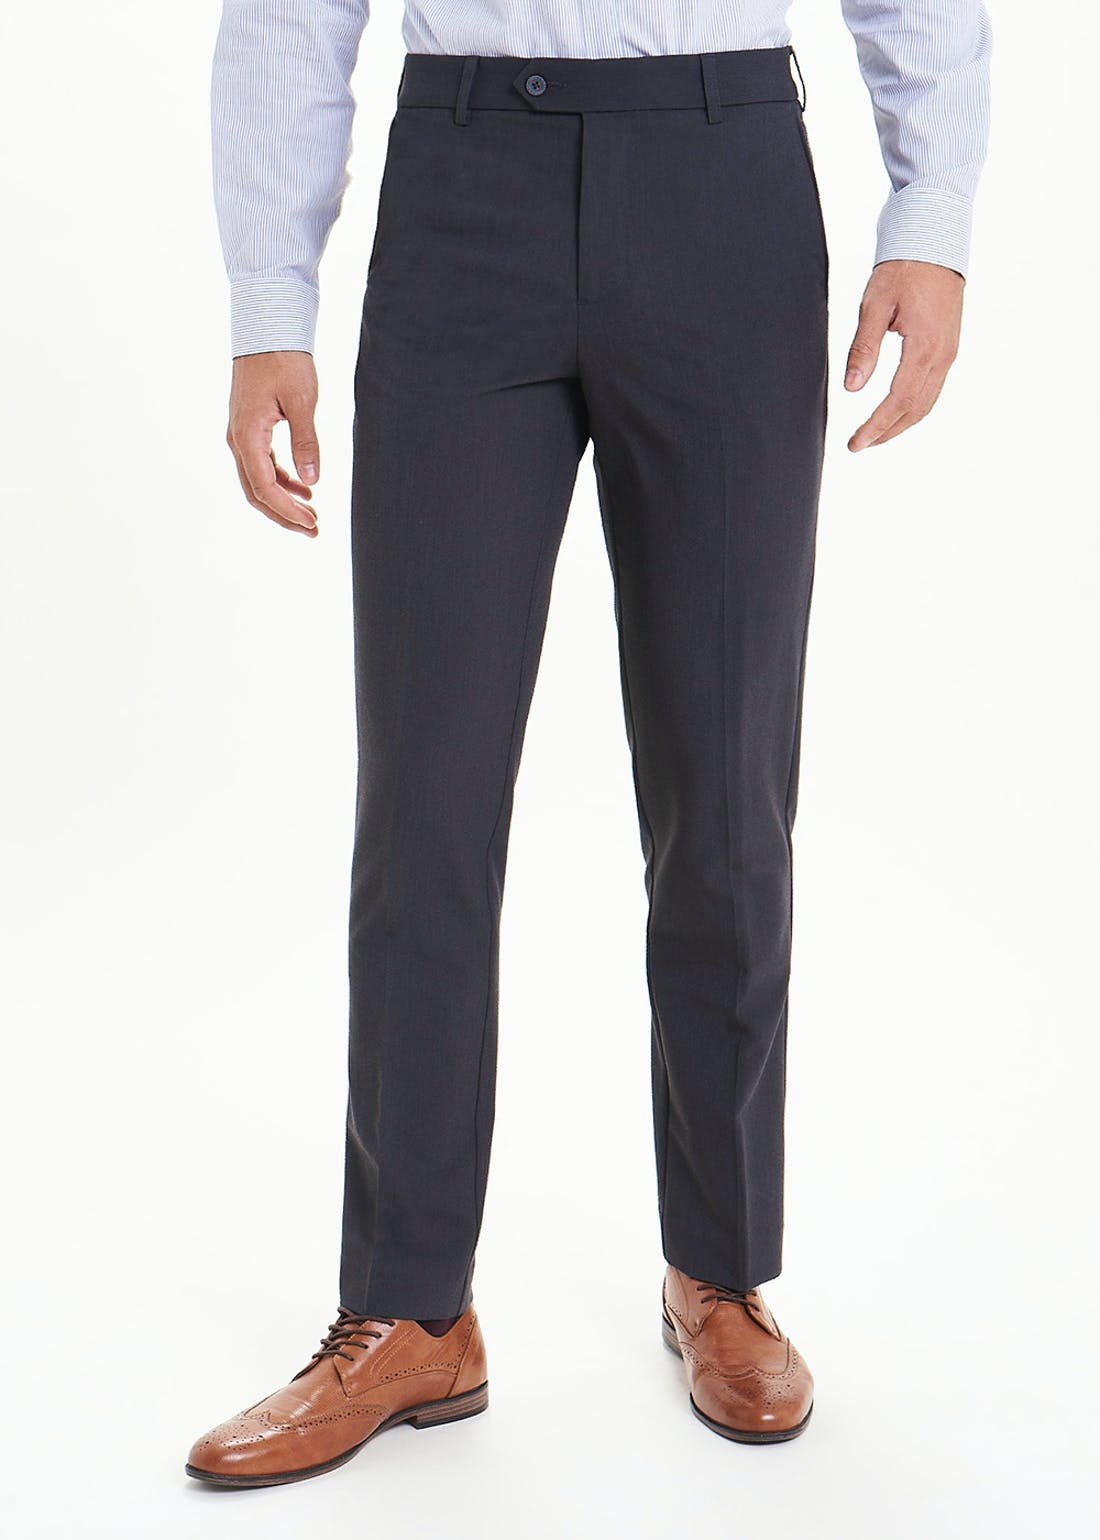 Farah Stretch Active Waist Trousers